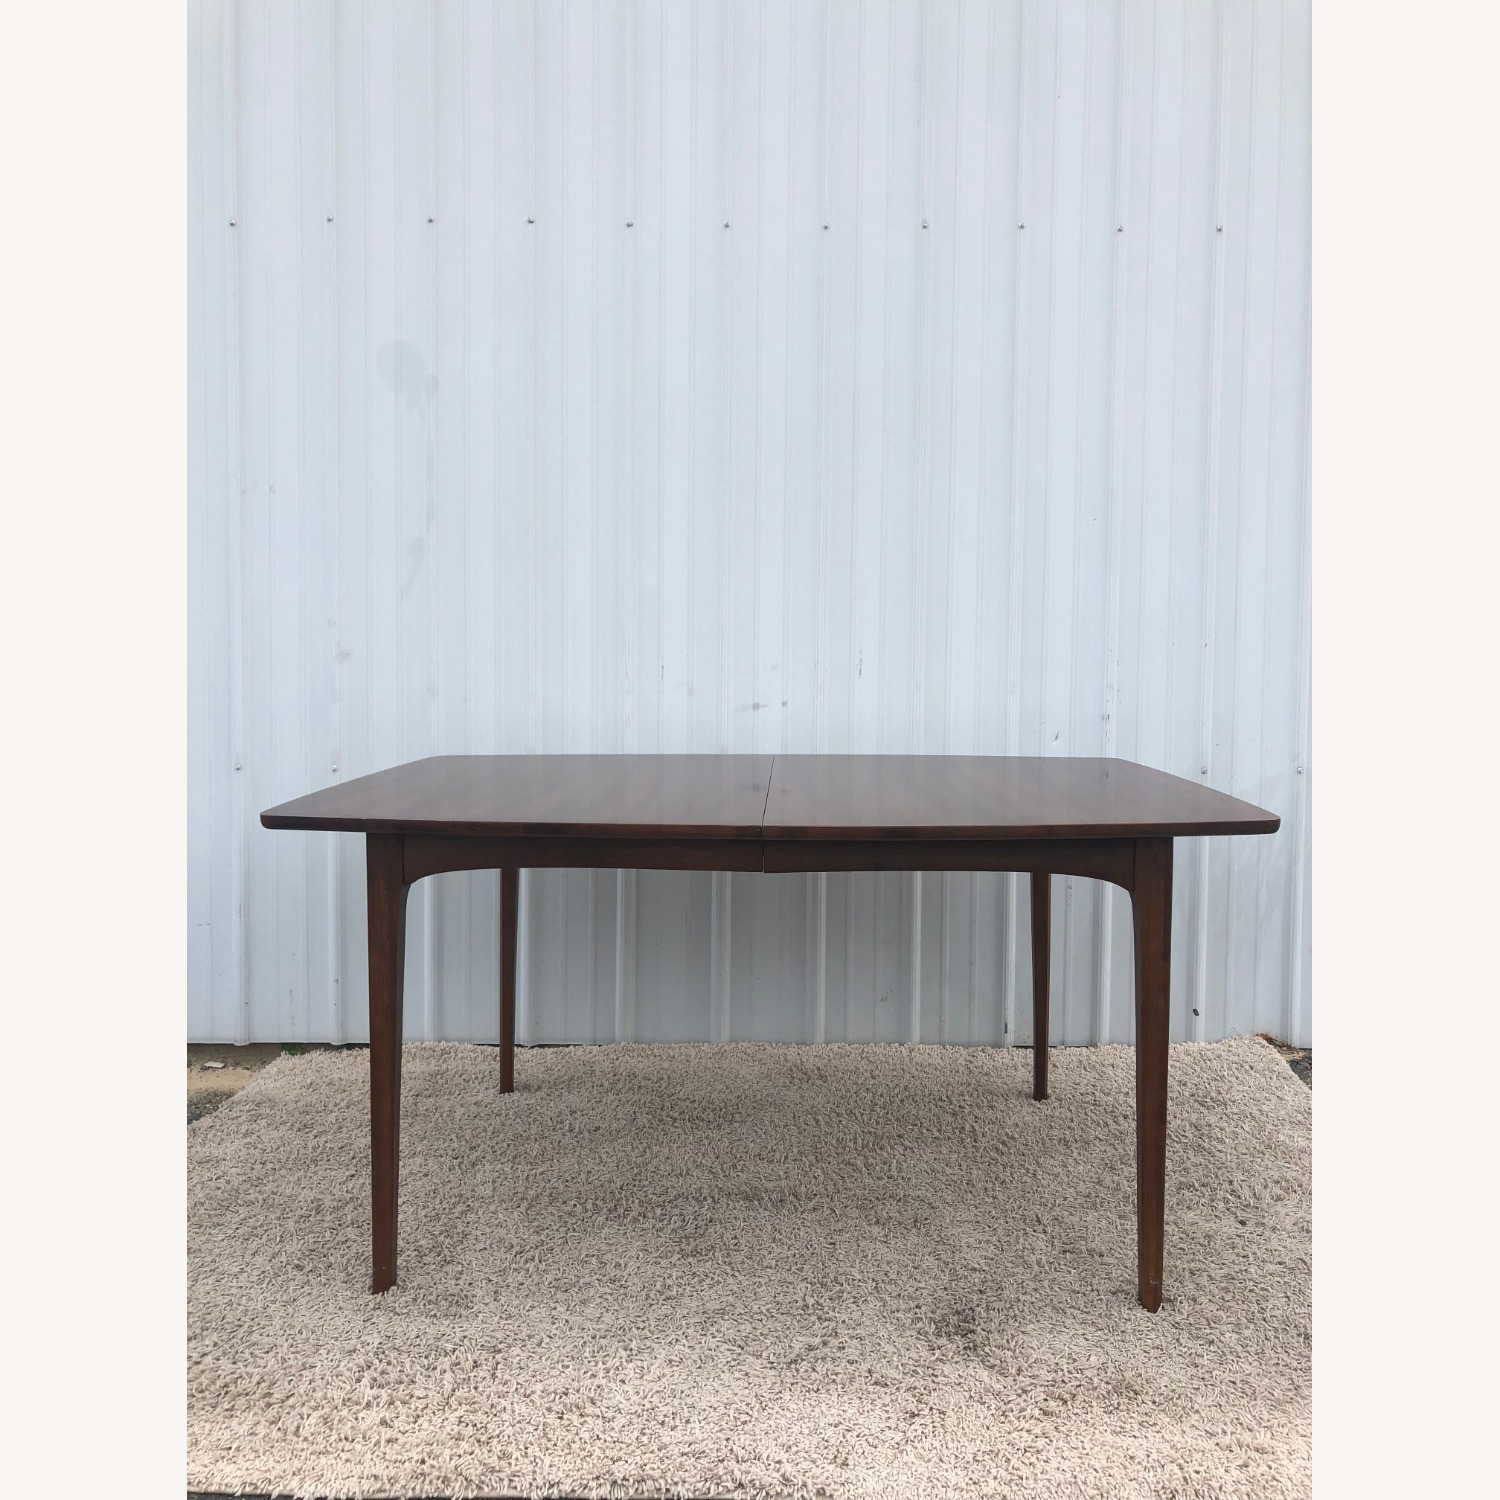 Mid Century Walnut Dining Table with 3 Leafs - image-6